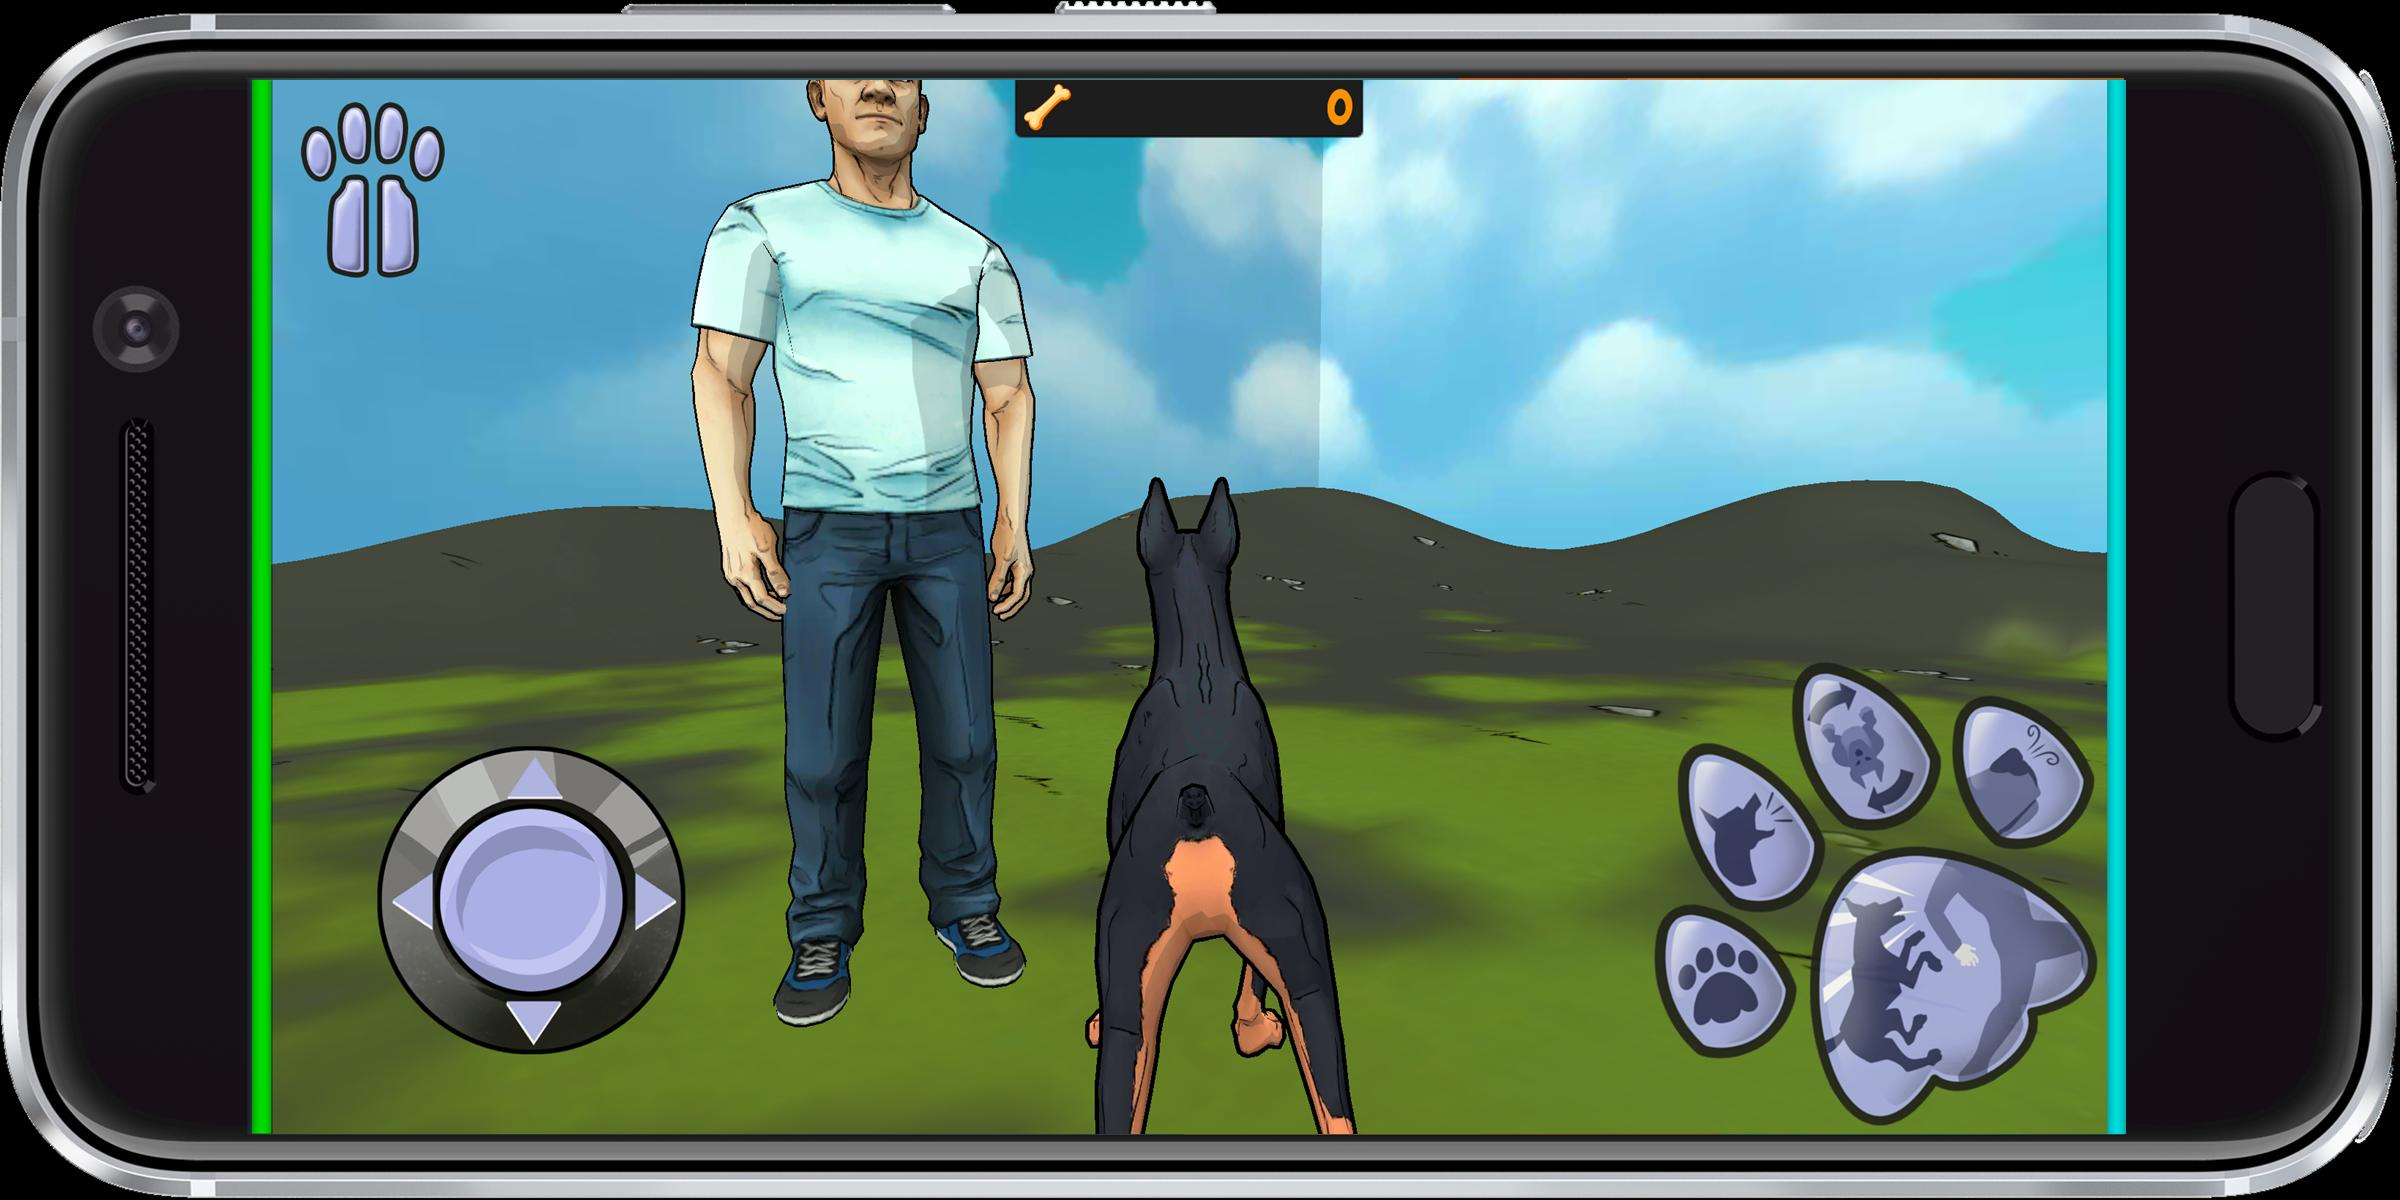 Who Let The Dogs Out For Android Apk Download